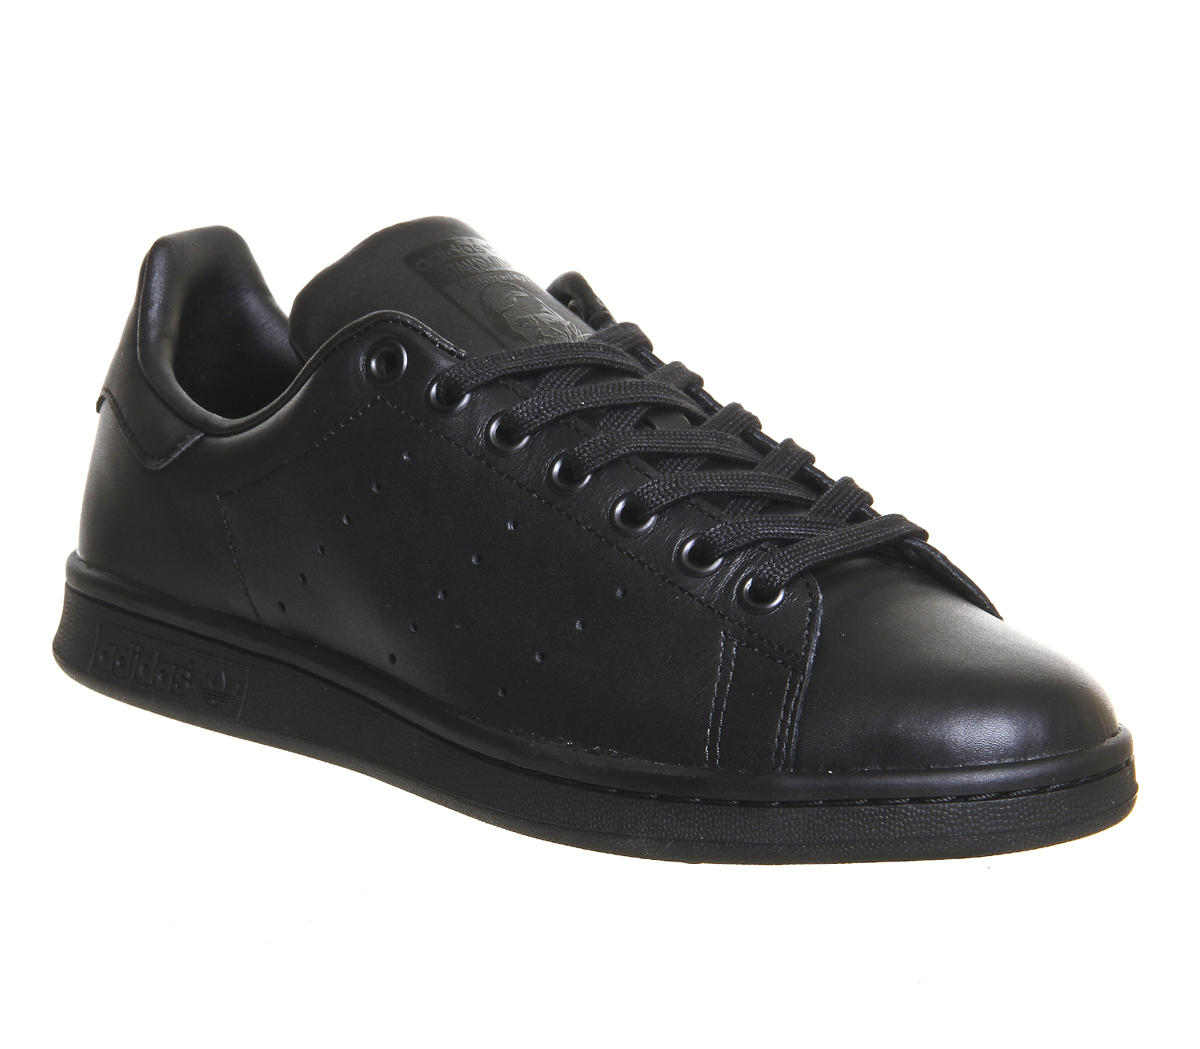 011dc6ef72c941 Mens Adidas Stan Smith CORE BLACK BLACK Trainers Shoes